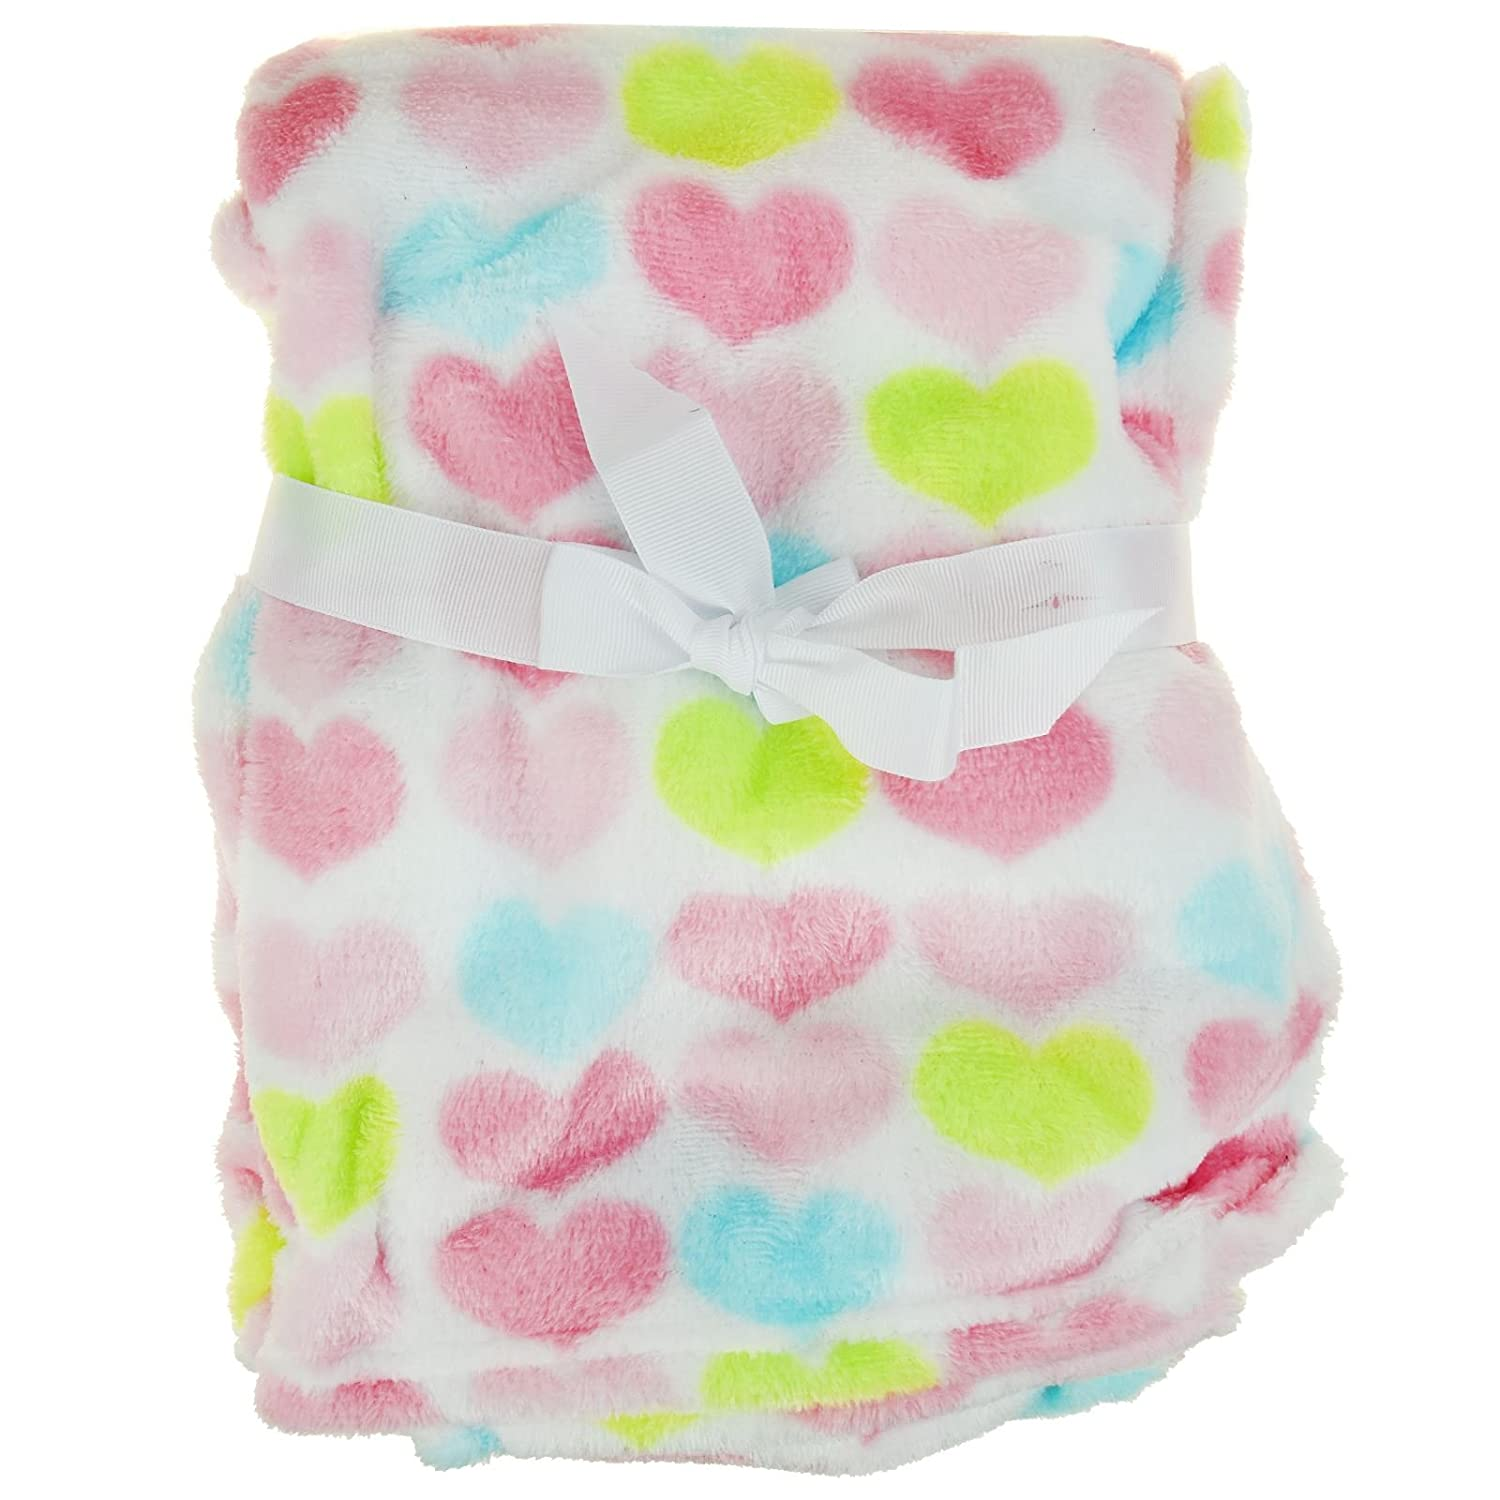 Newborn Baby Soft Fleece Blanket Pram Moses Basket Crib Girl Boy Unisex 0 Month